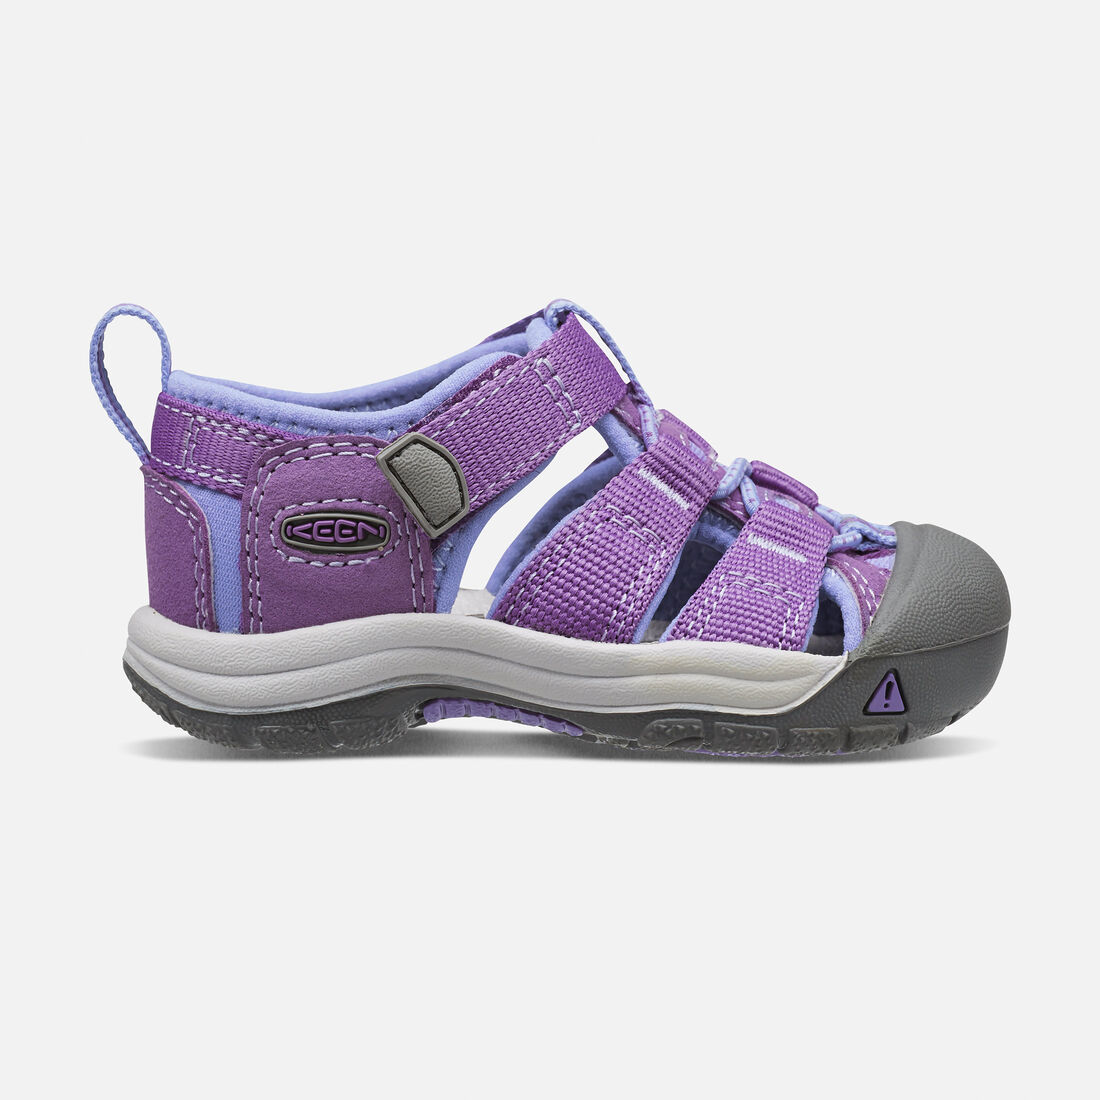 Toddlers' Newport H2 in Purple Heart/Periwinkle - large view.